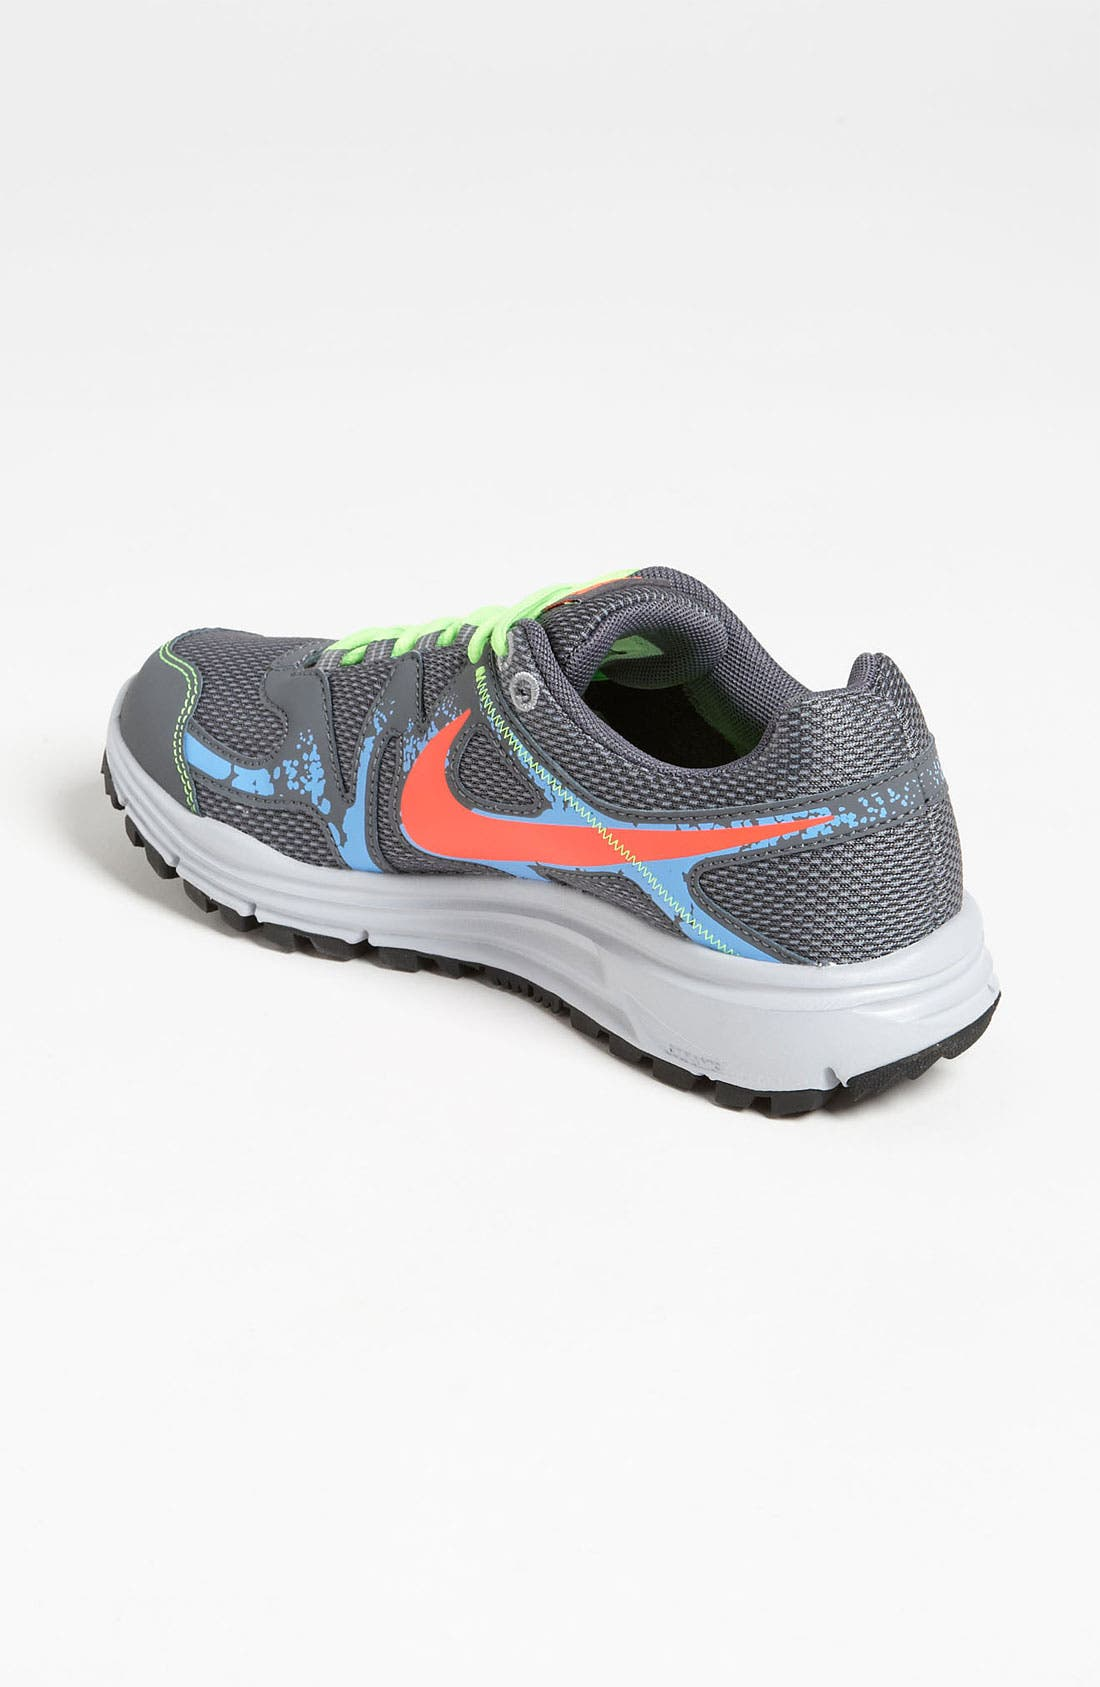 Alternate Image 2  - Nike 'Lunarfly+ 3 Trail' Running Shoe (Women)